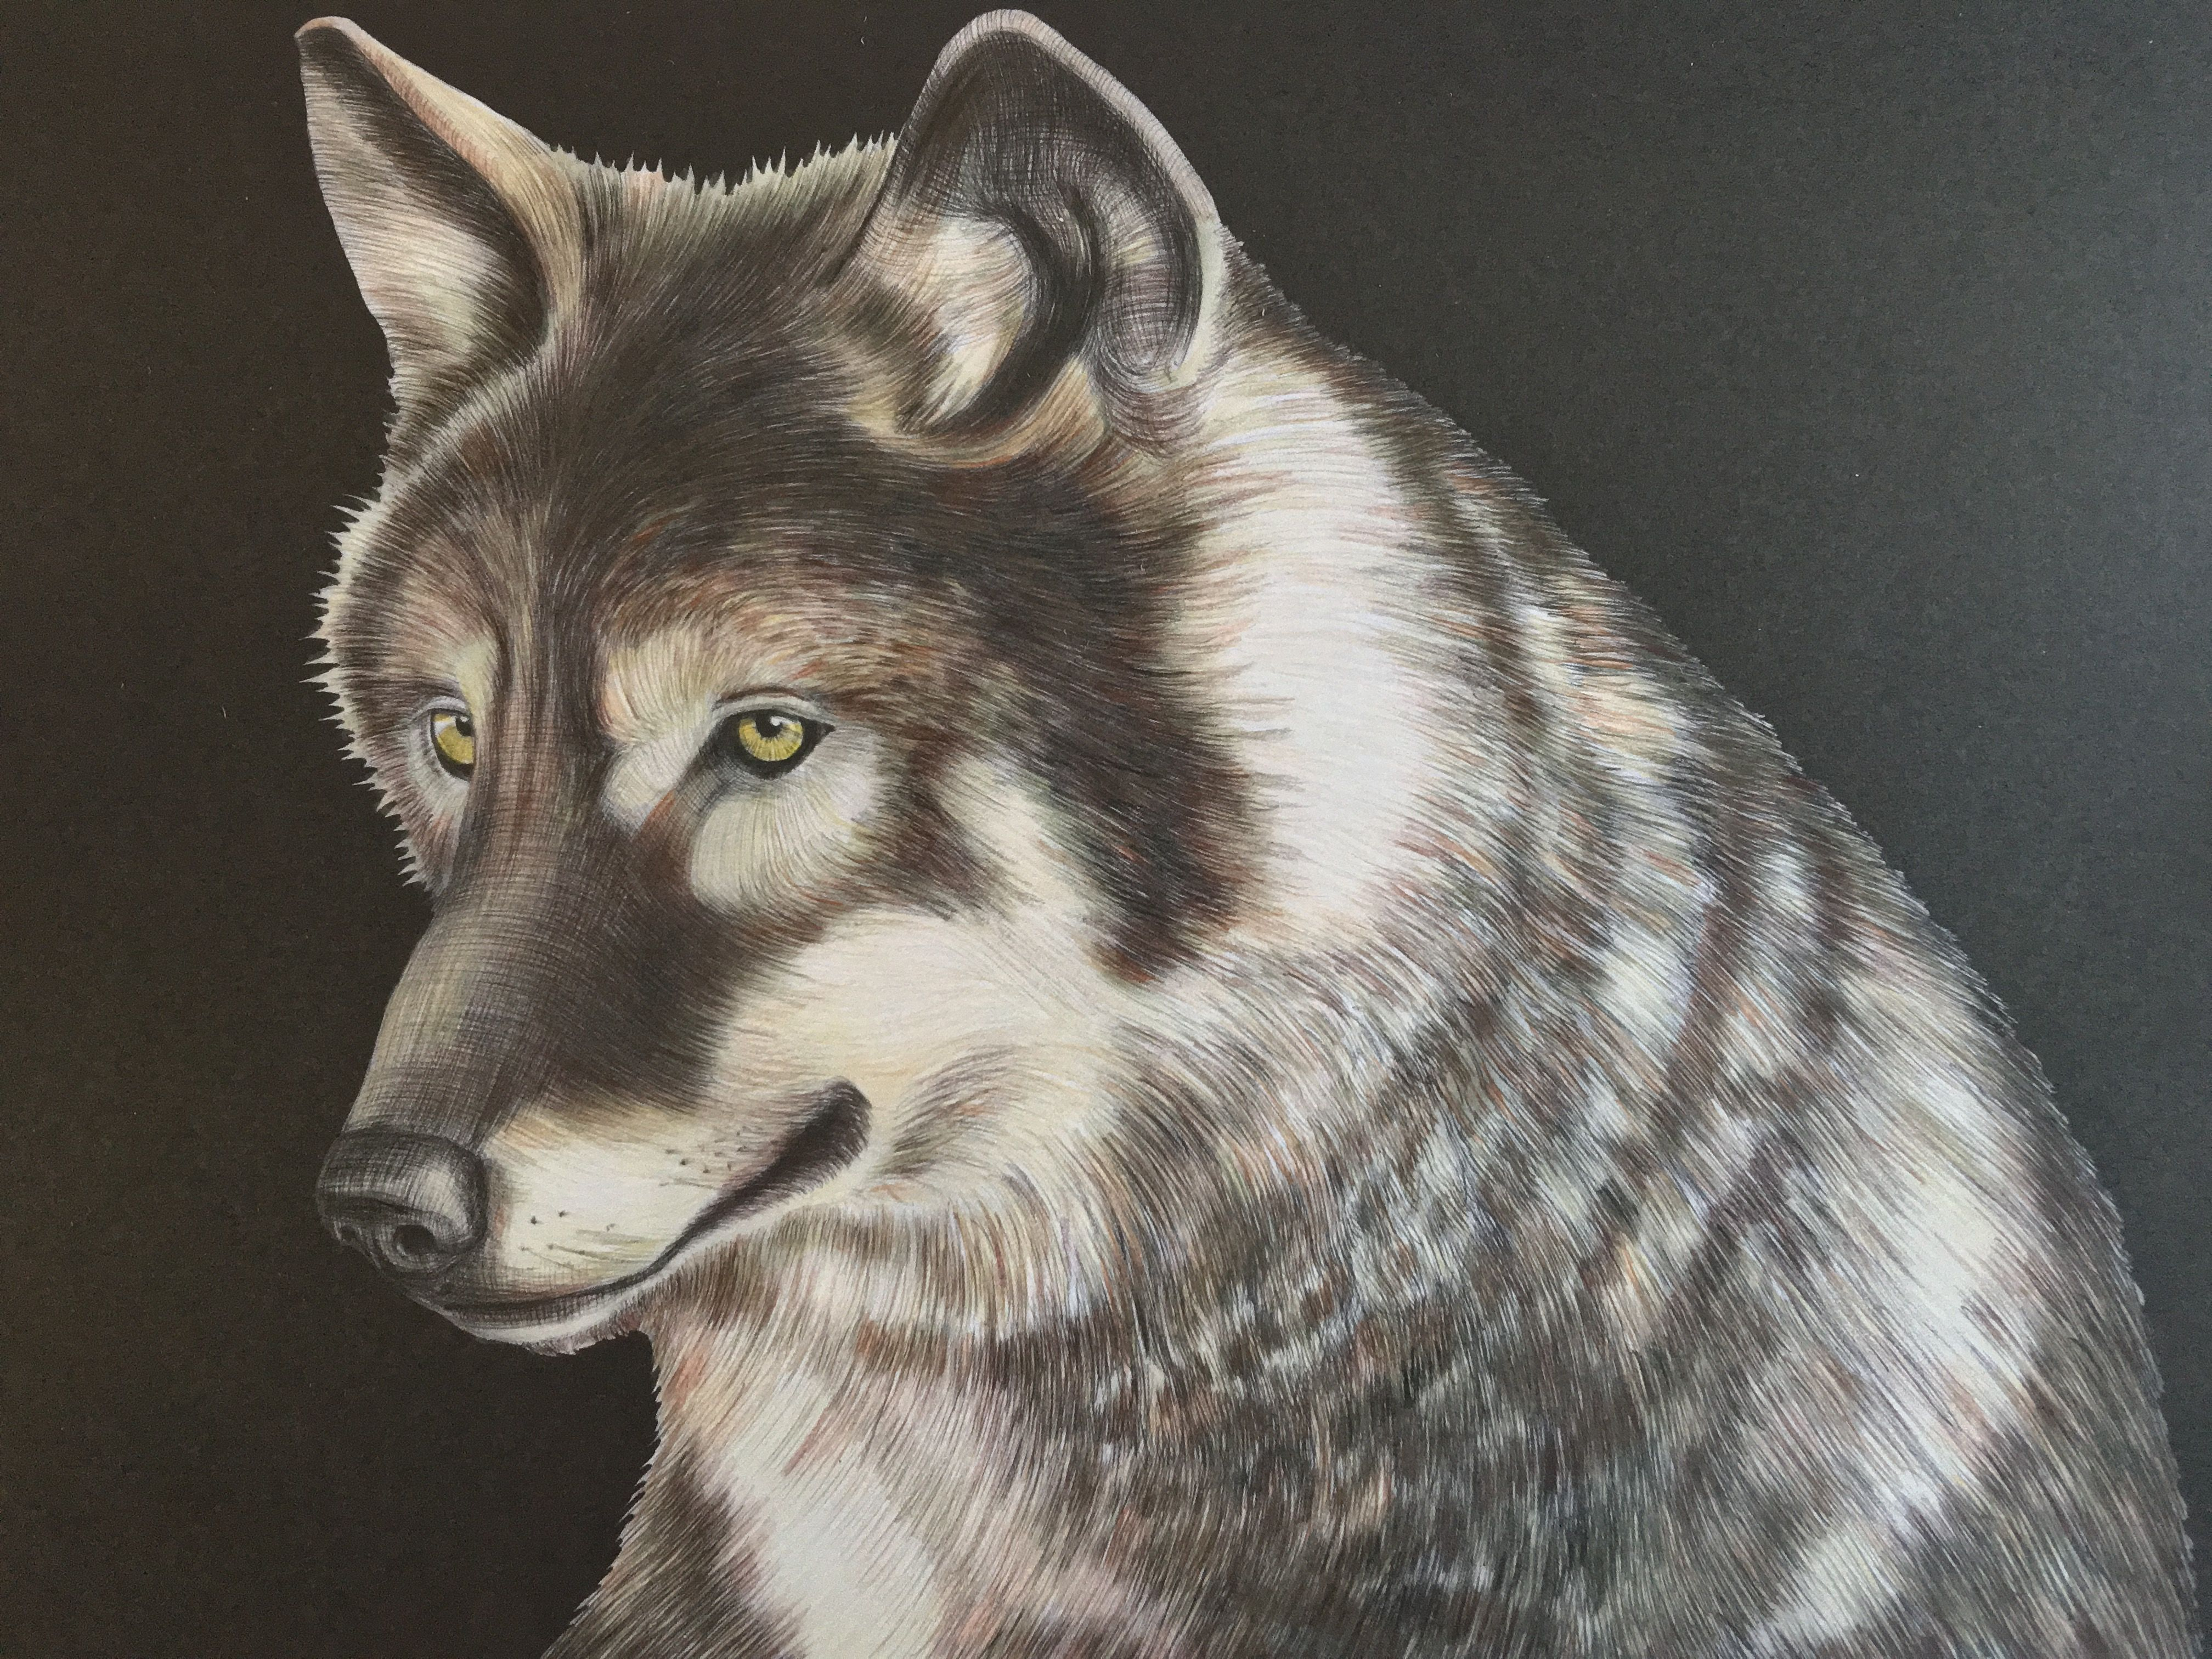 Coloring Pages Wolf : Wolf by jo w drawn by tim jeffs coloured by me colouring from the